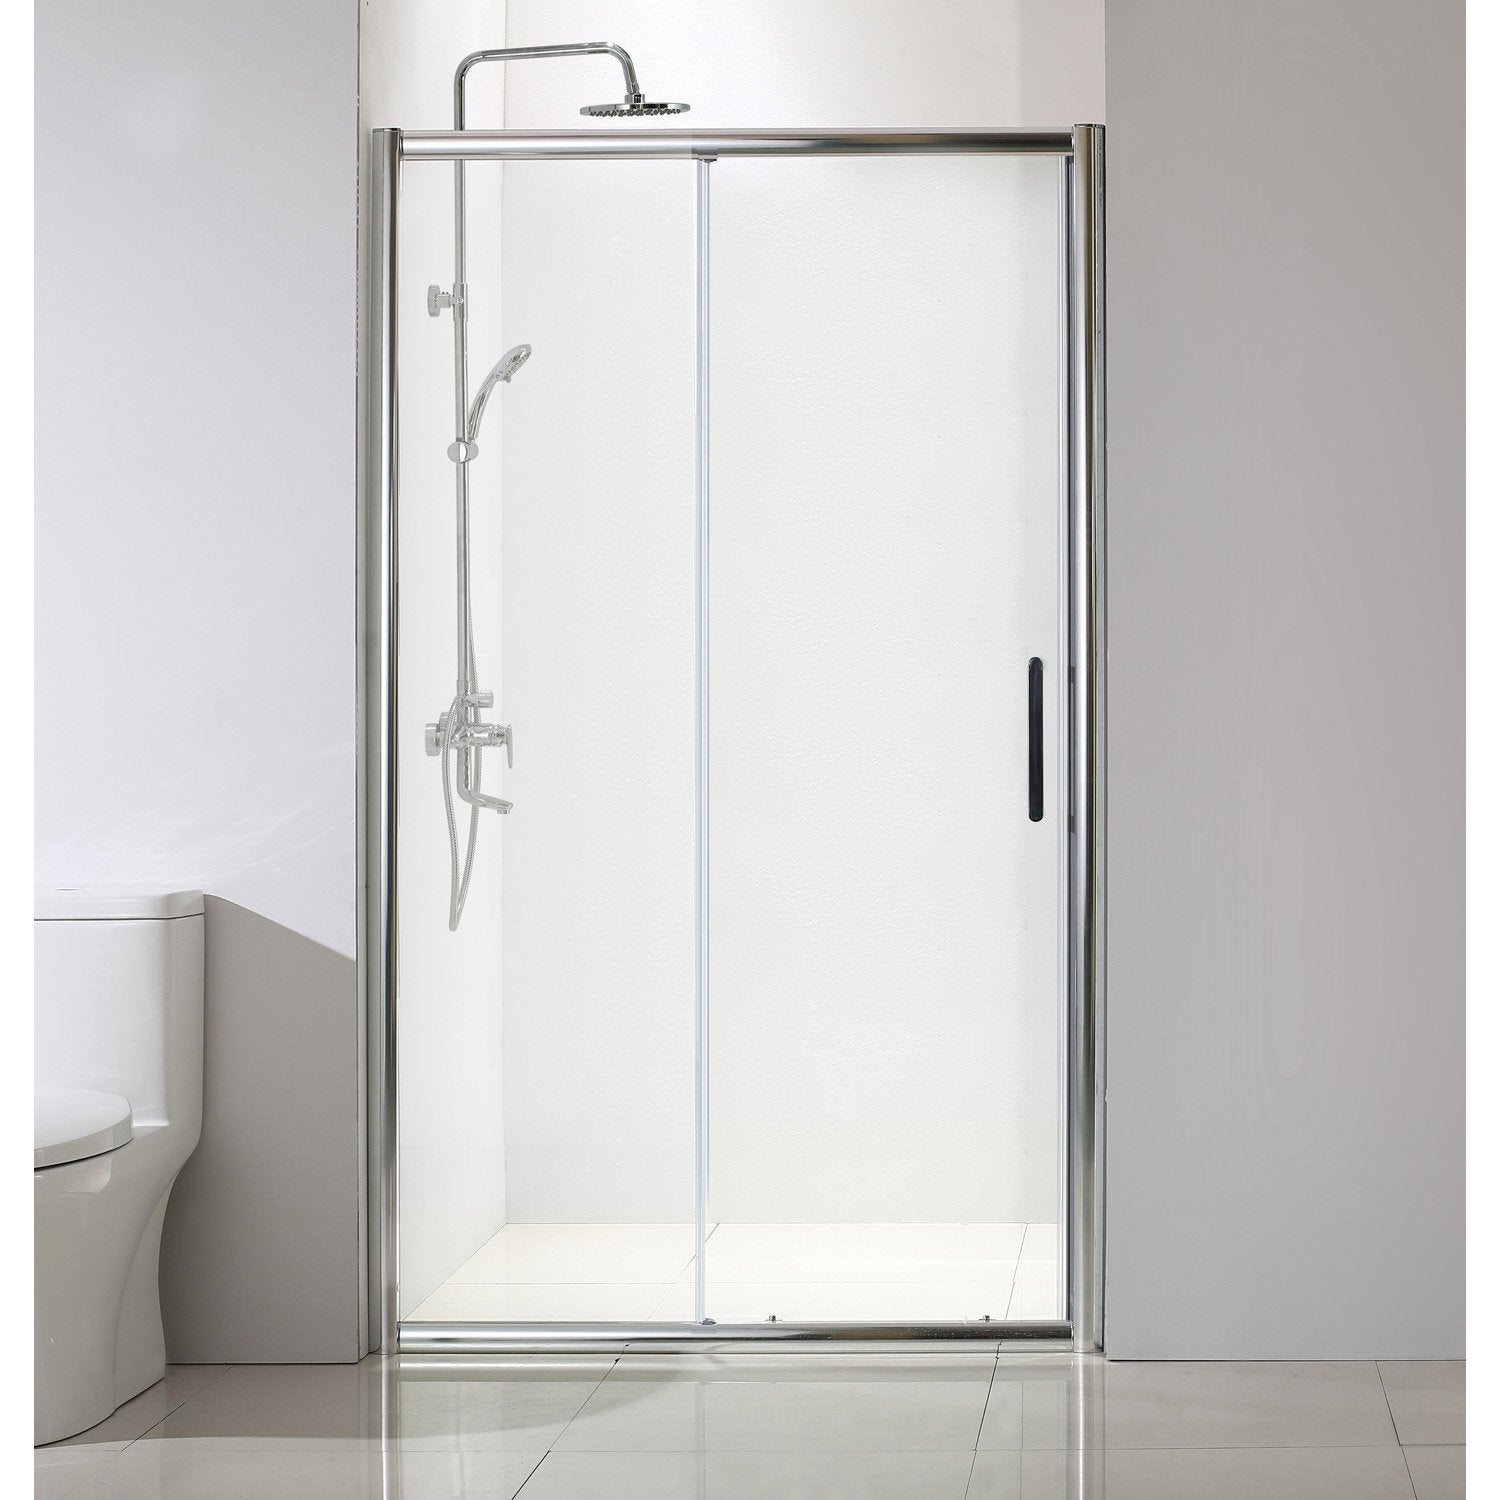 Porte de douche coulissante 120 cm transparent quad for Porte coulissante 120 cm